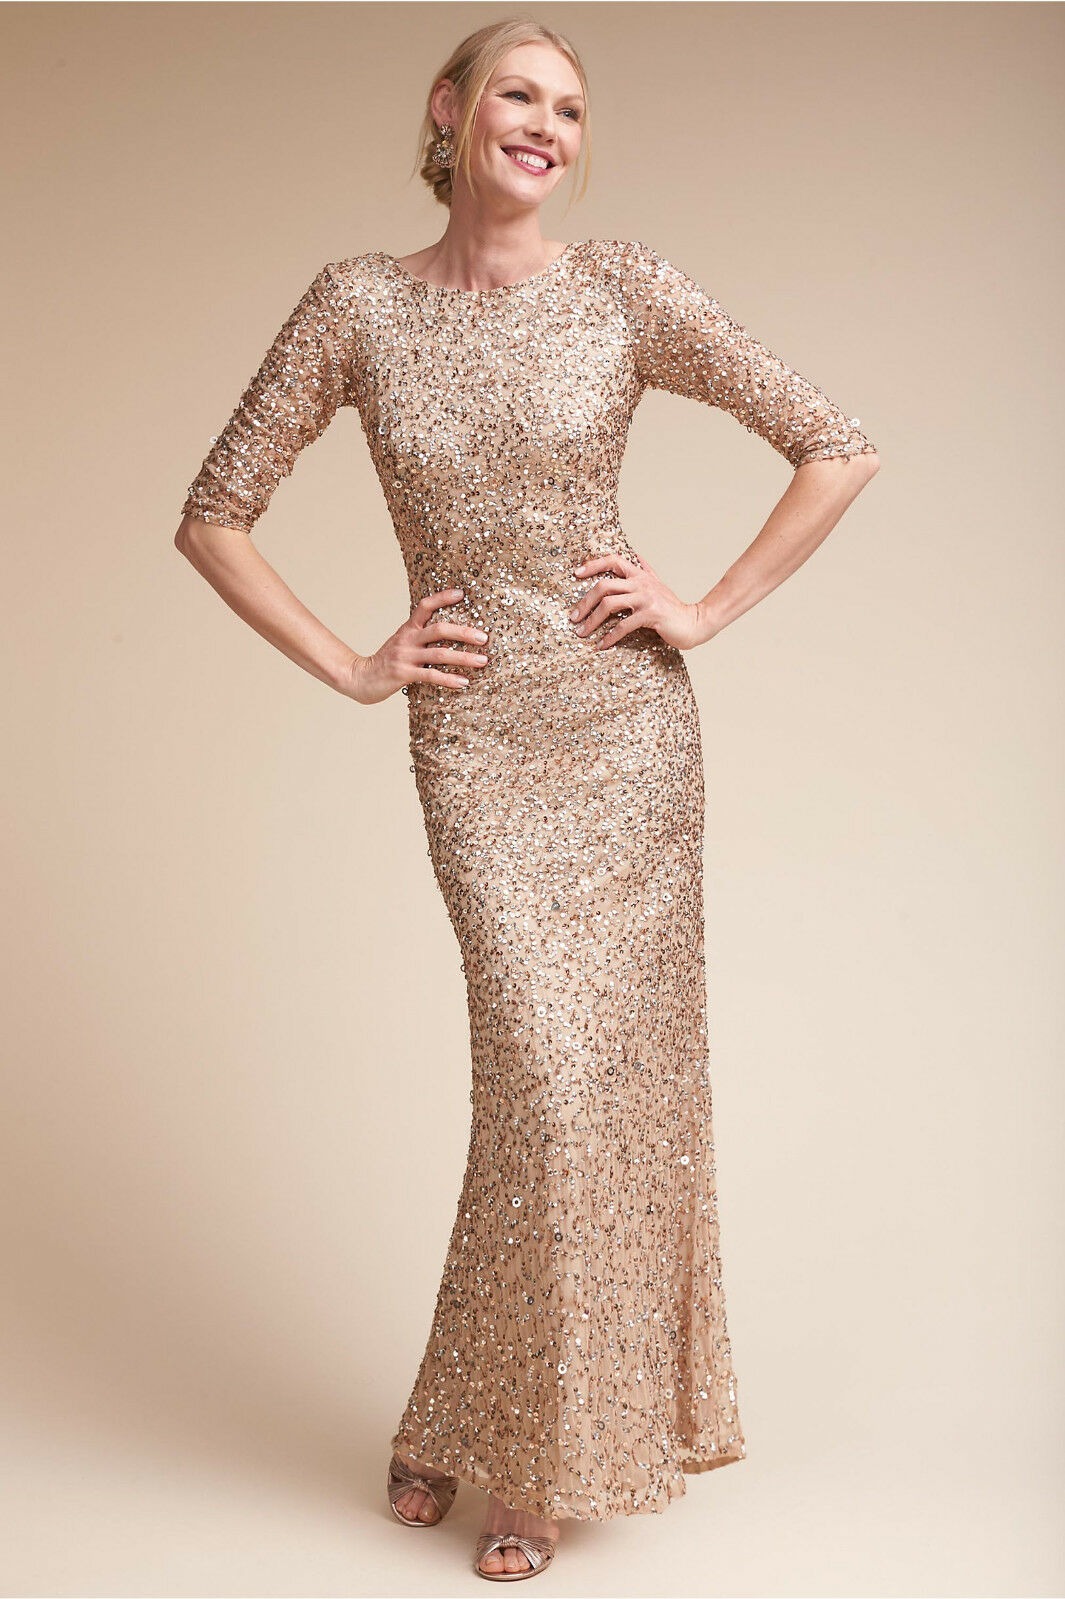 NEW ANTHROPOLOGIE BHLDN CHAMPAGNE TIRAGE SEQUIN DRESS BY ADRIANNA PAPELL SZ 10